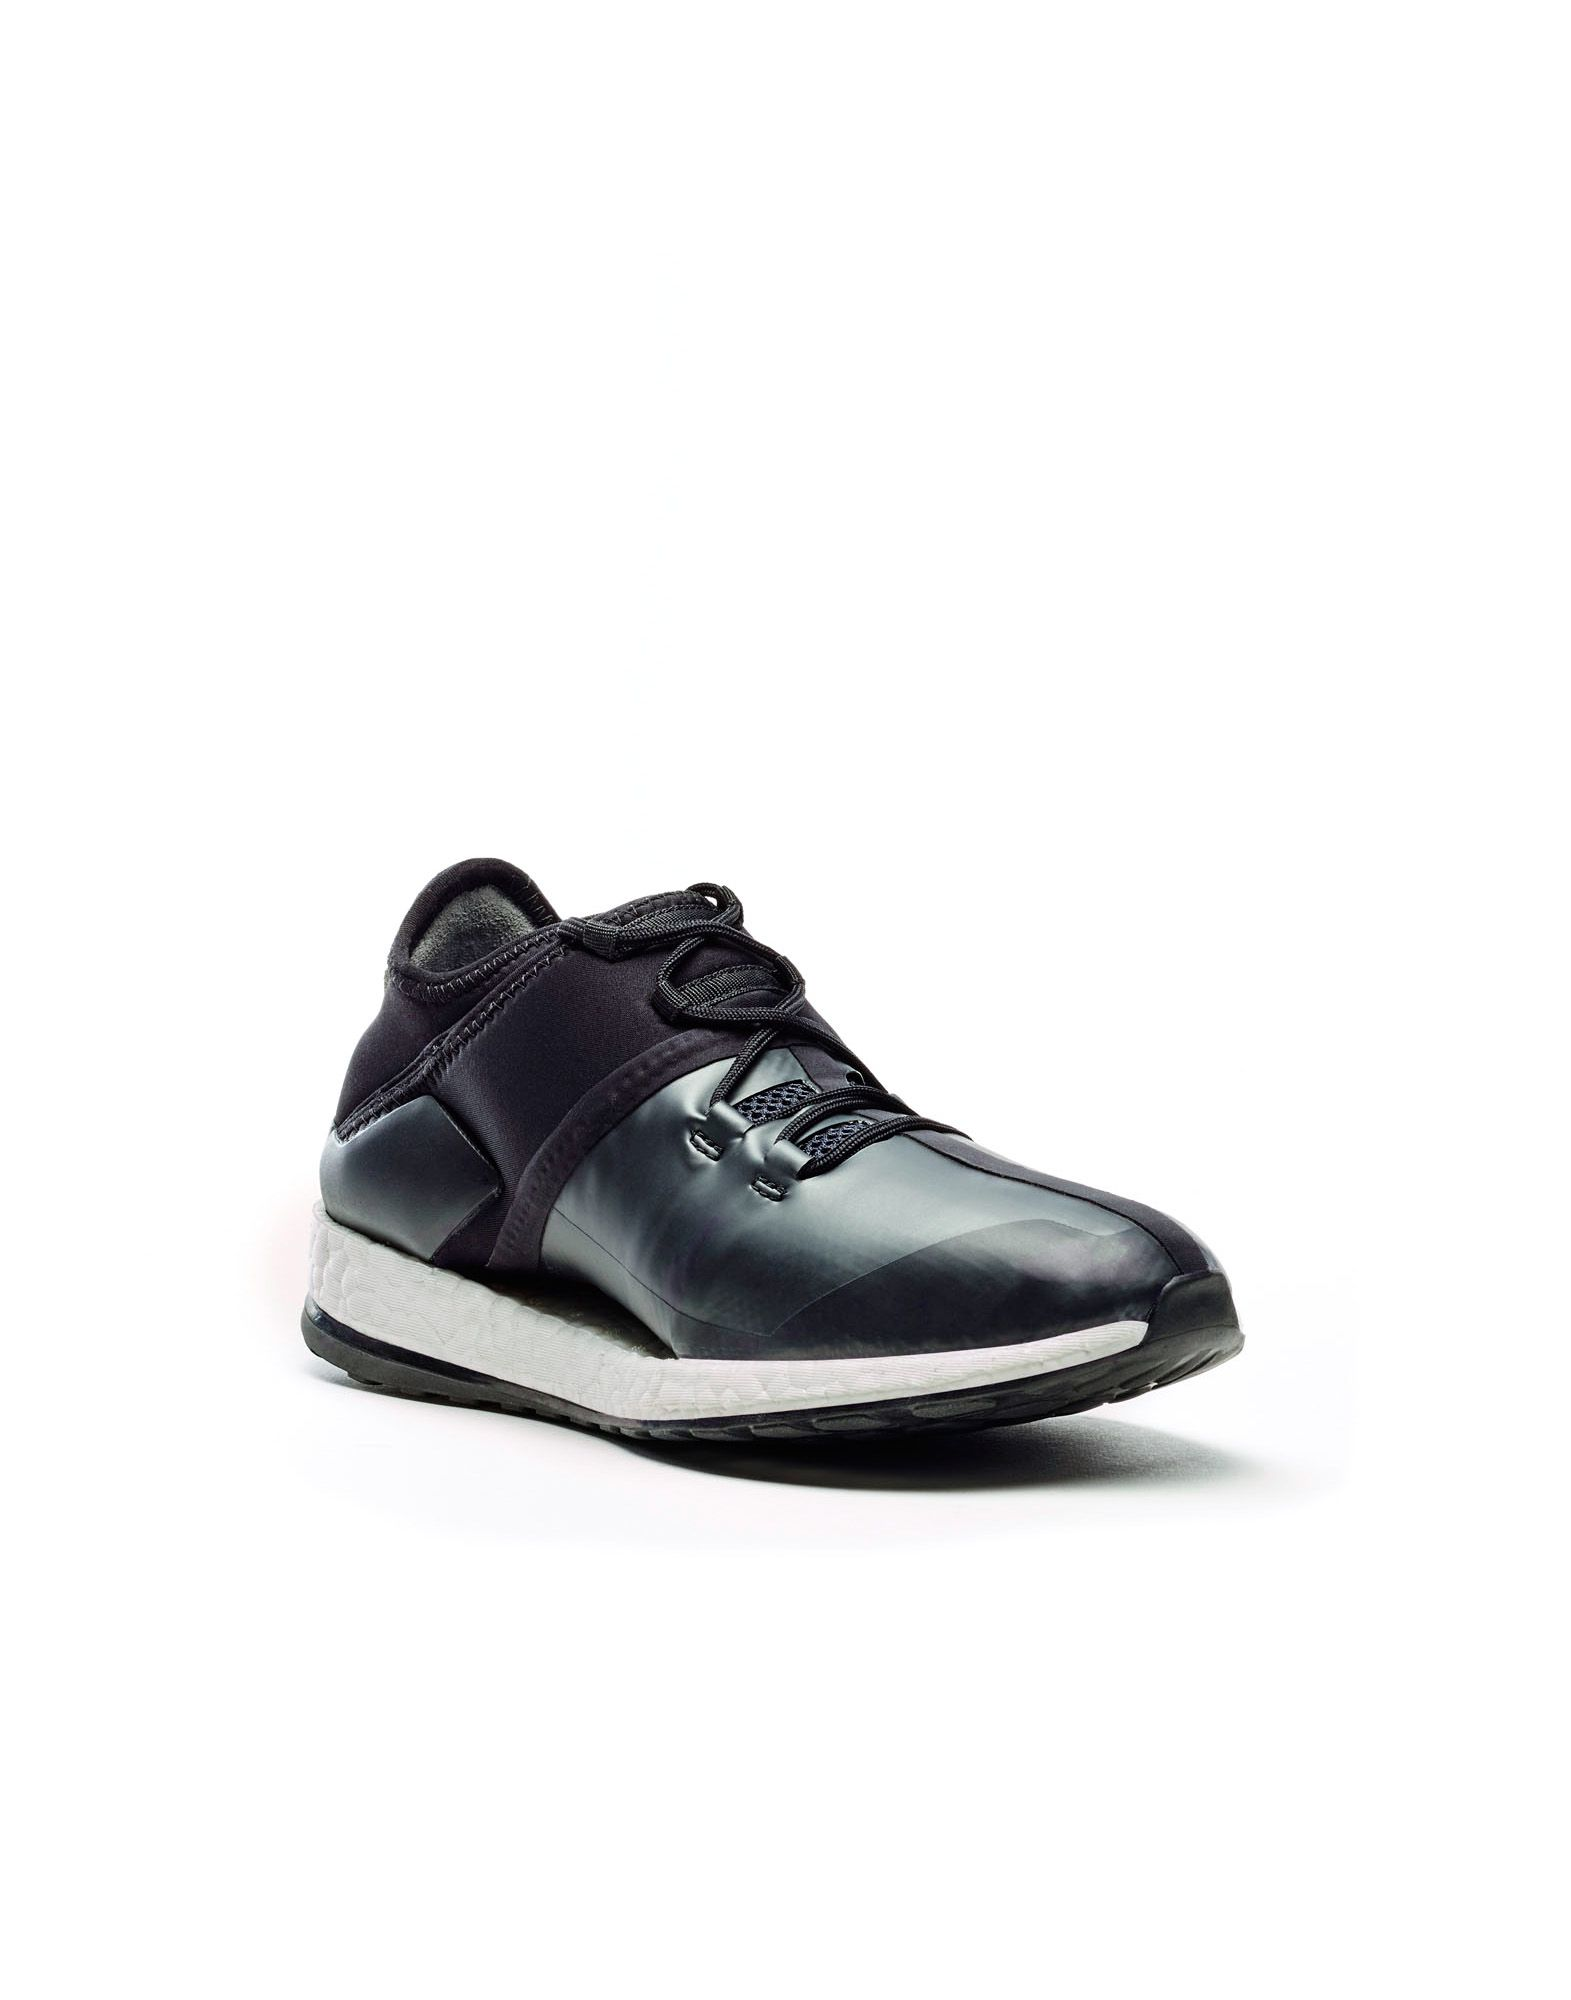 cheap for discount 77798 4962e Y 3 SPORT RUN X Sneakers | Adidas Y-3 Official Site